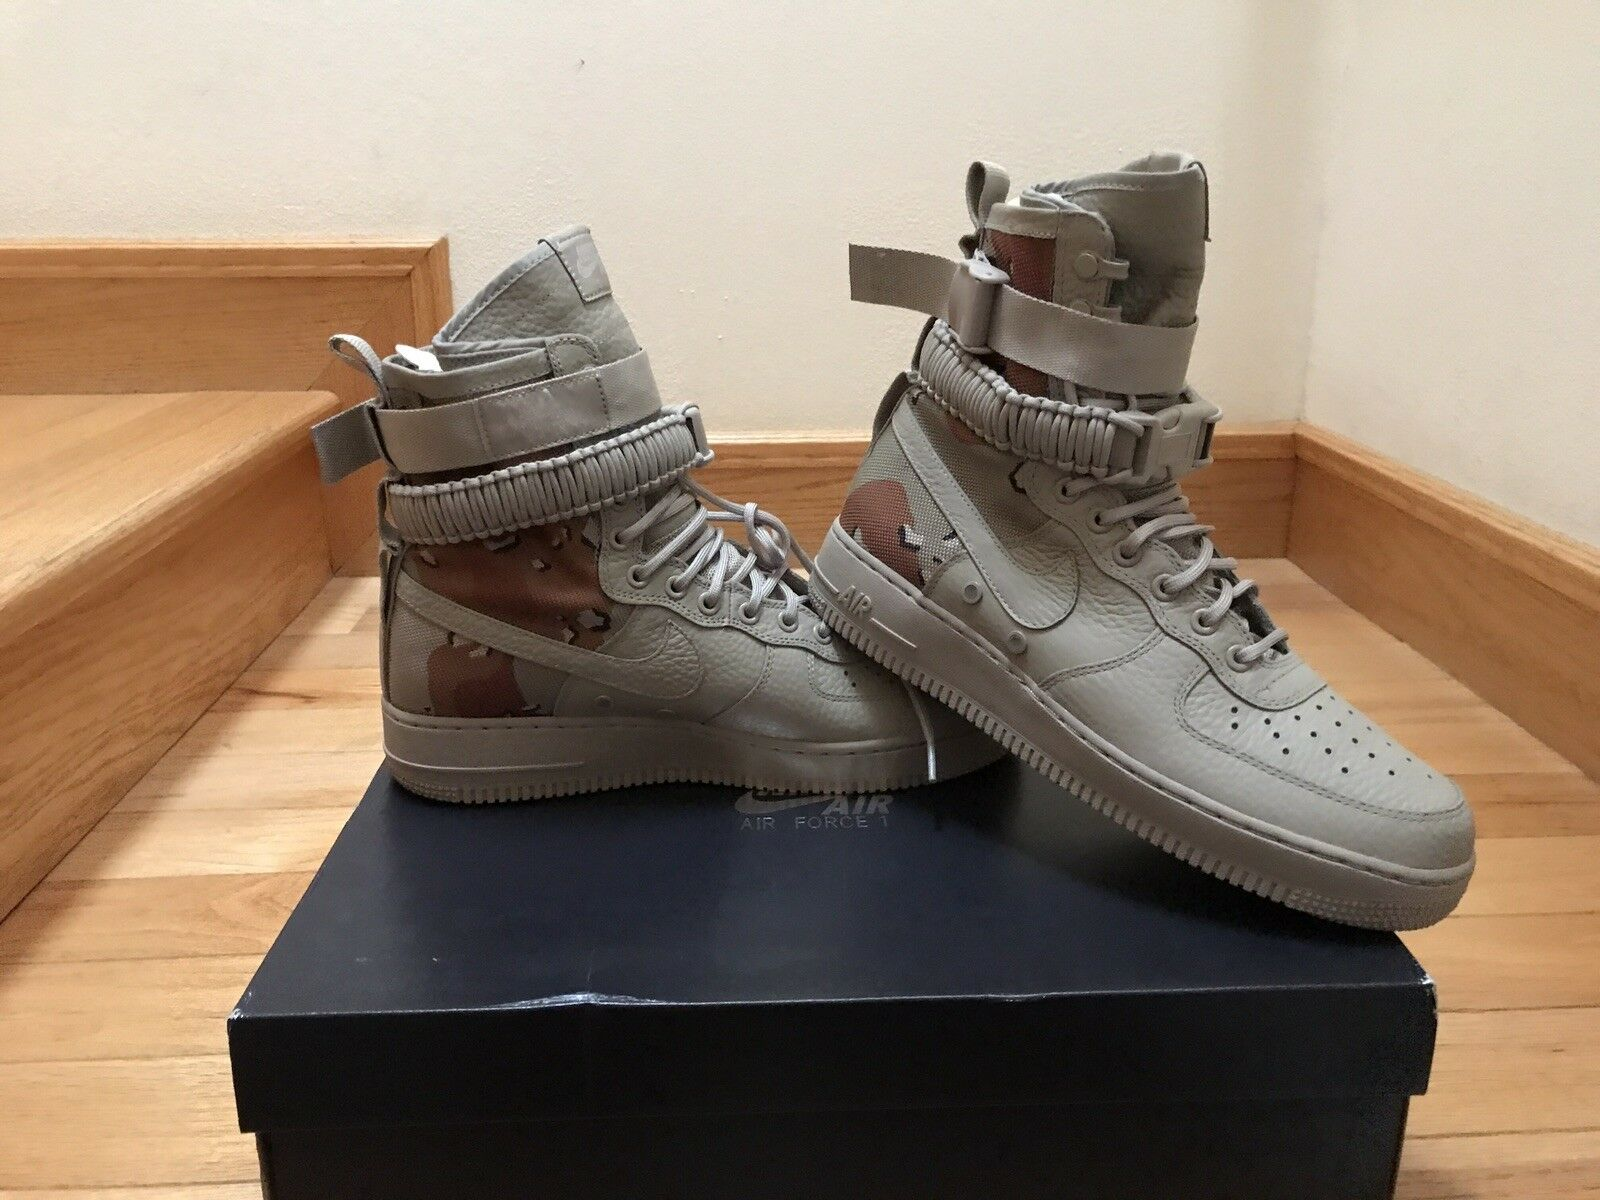 Nike SF AF1 Air Force 1 Special Field Desert Camo QS 864024-202 Size 9.5 men